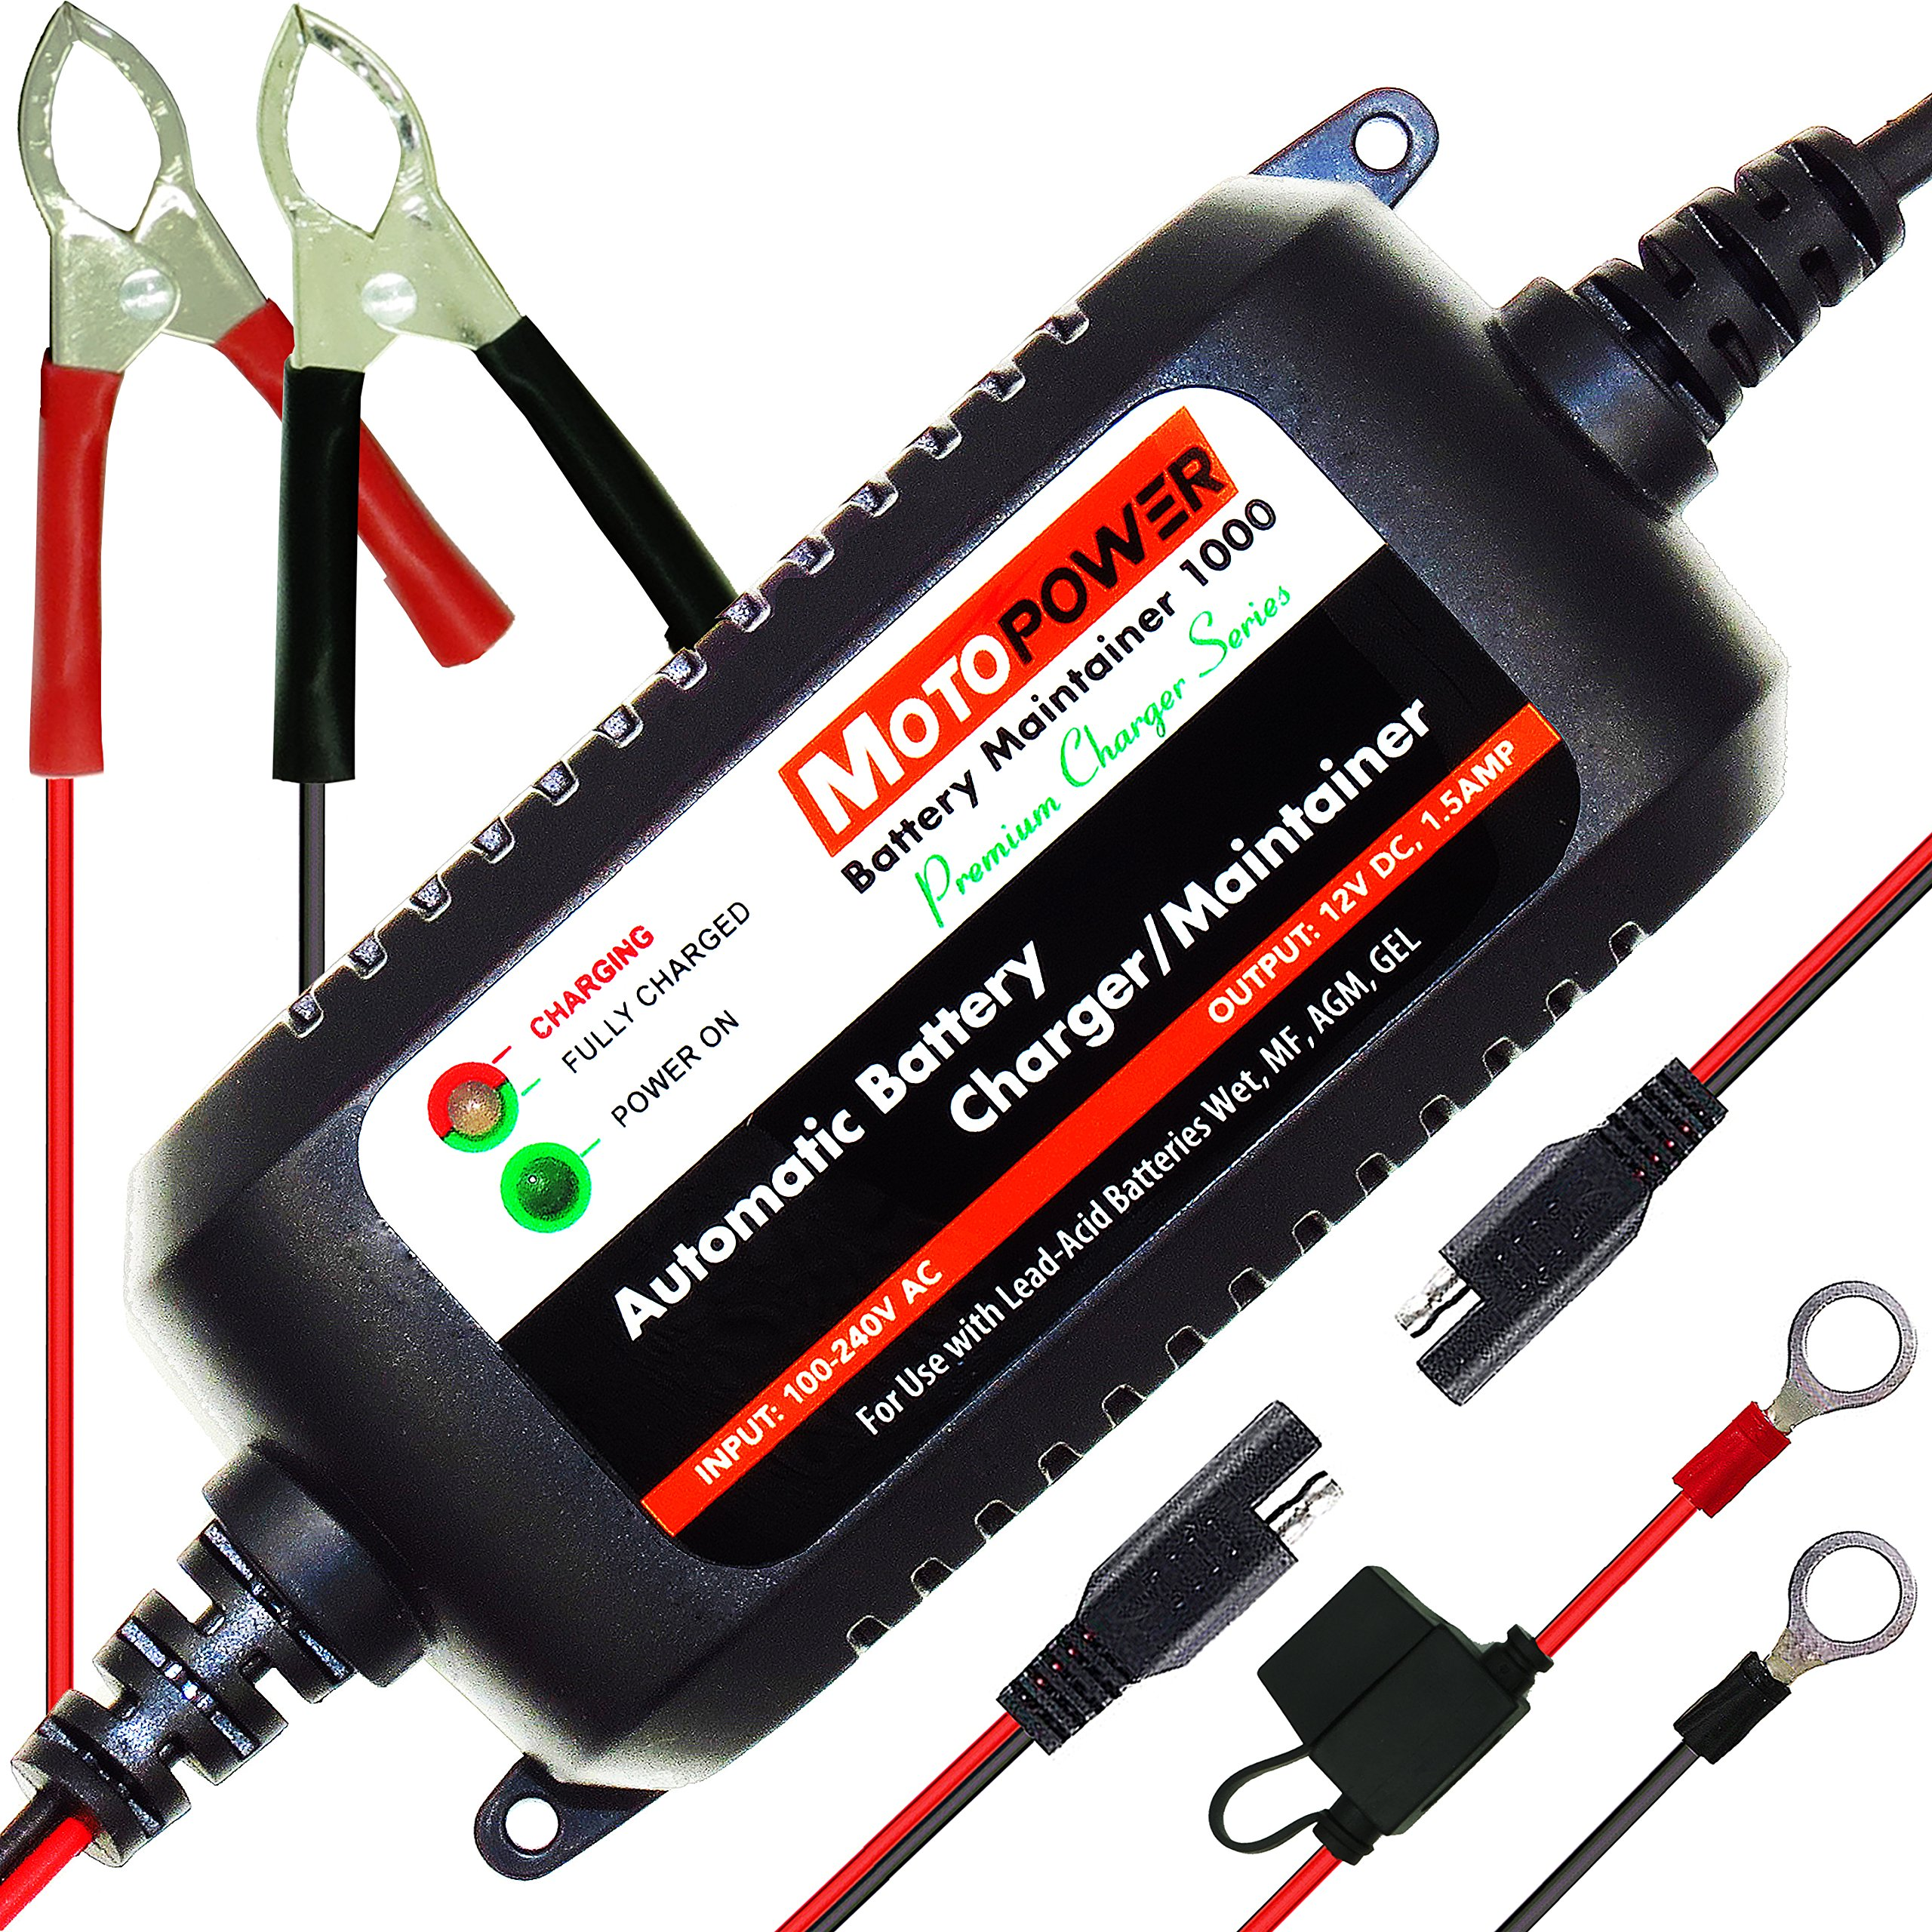 MOTOPOWER MP00206A 12V 1.5Amp Fully Automatic Battery Charger/Maintainer  for Cars, Motorcycles, ATVs, RVs, Powersports, Boat and More.